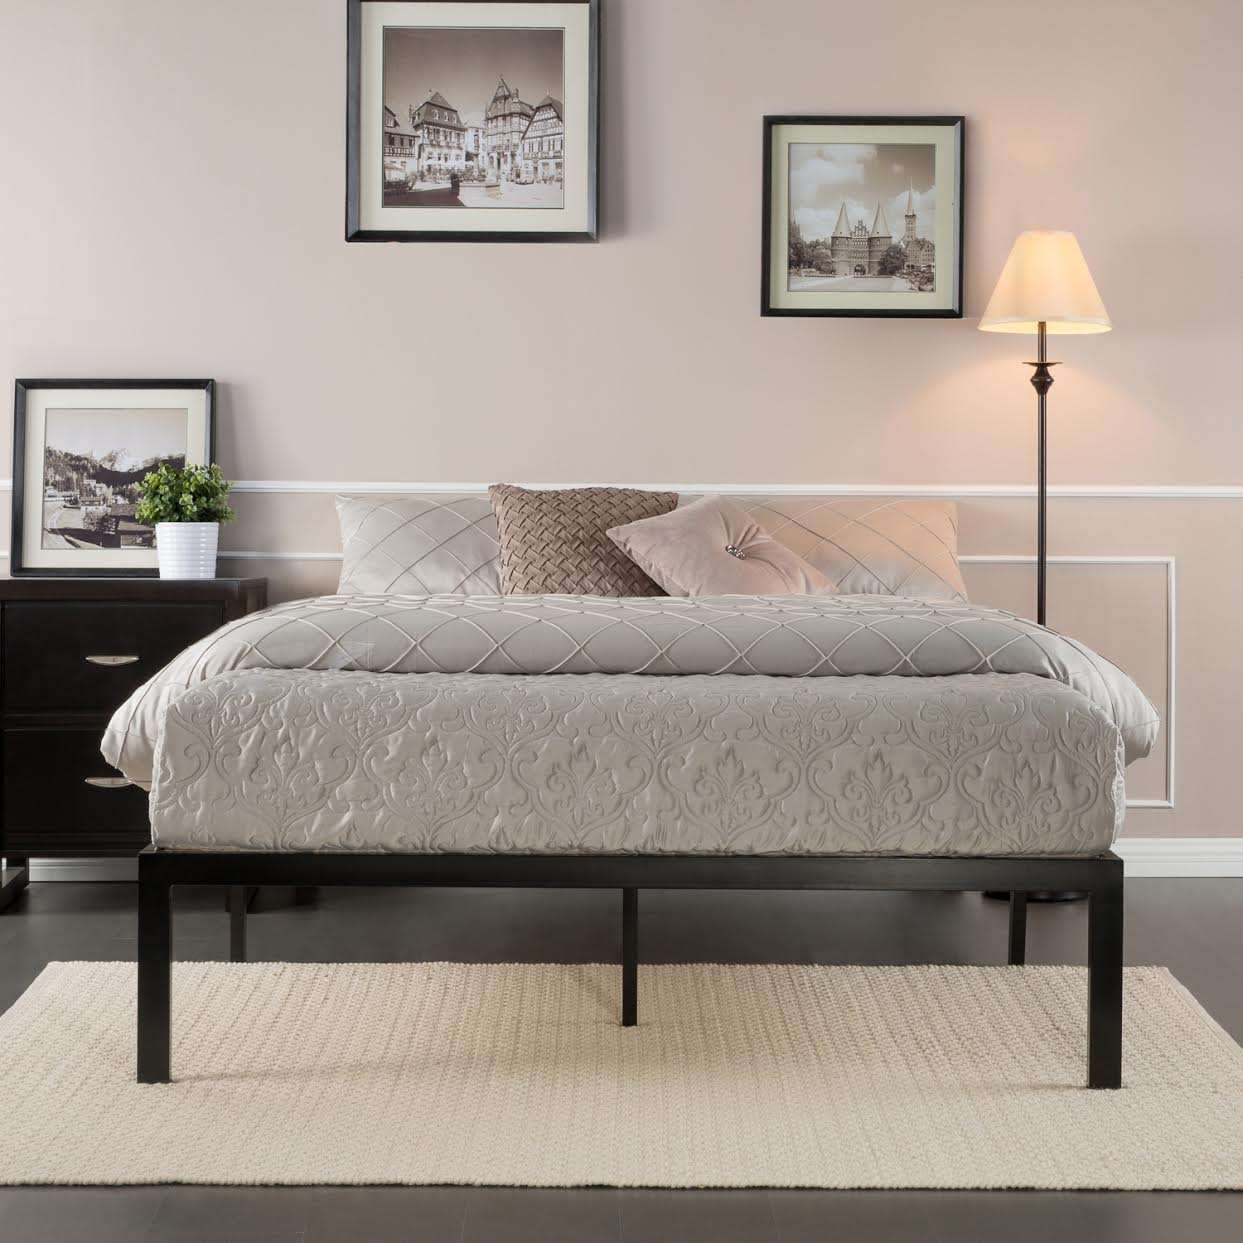 Perfect Zinus Platform Metal Bed Frame From Free Shipping Slickdeals net